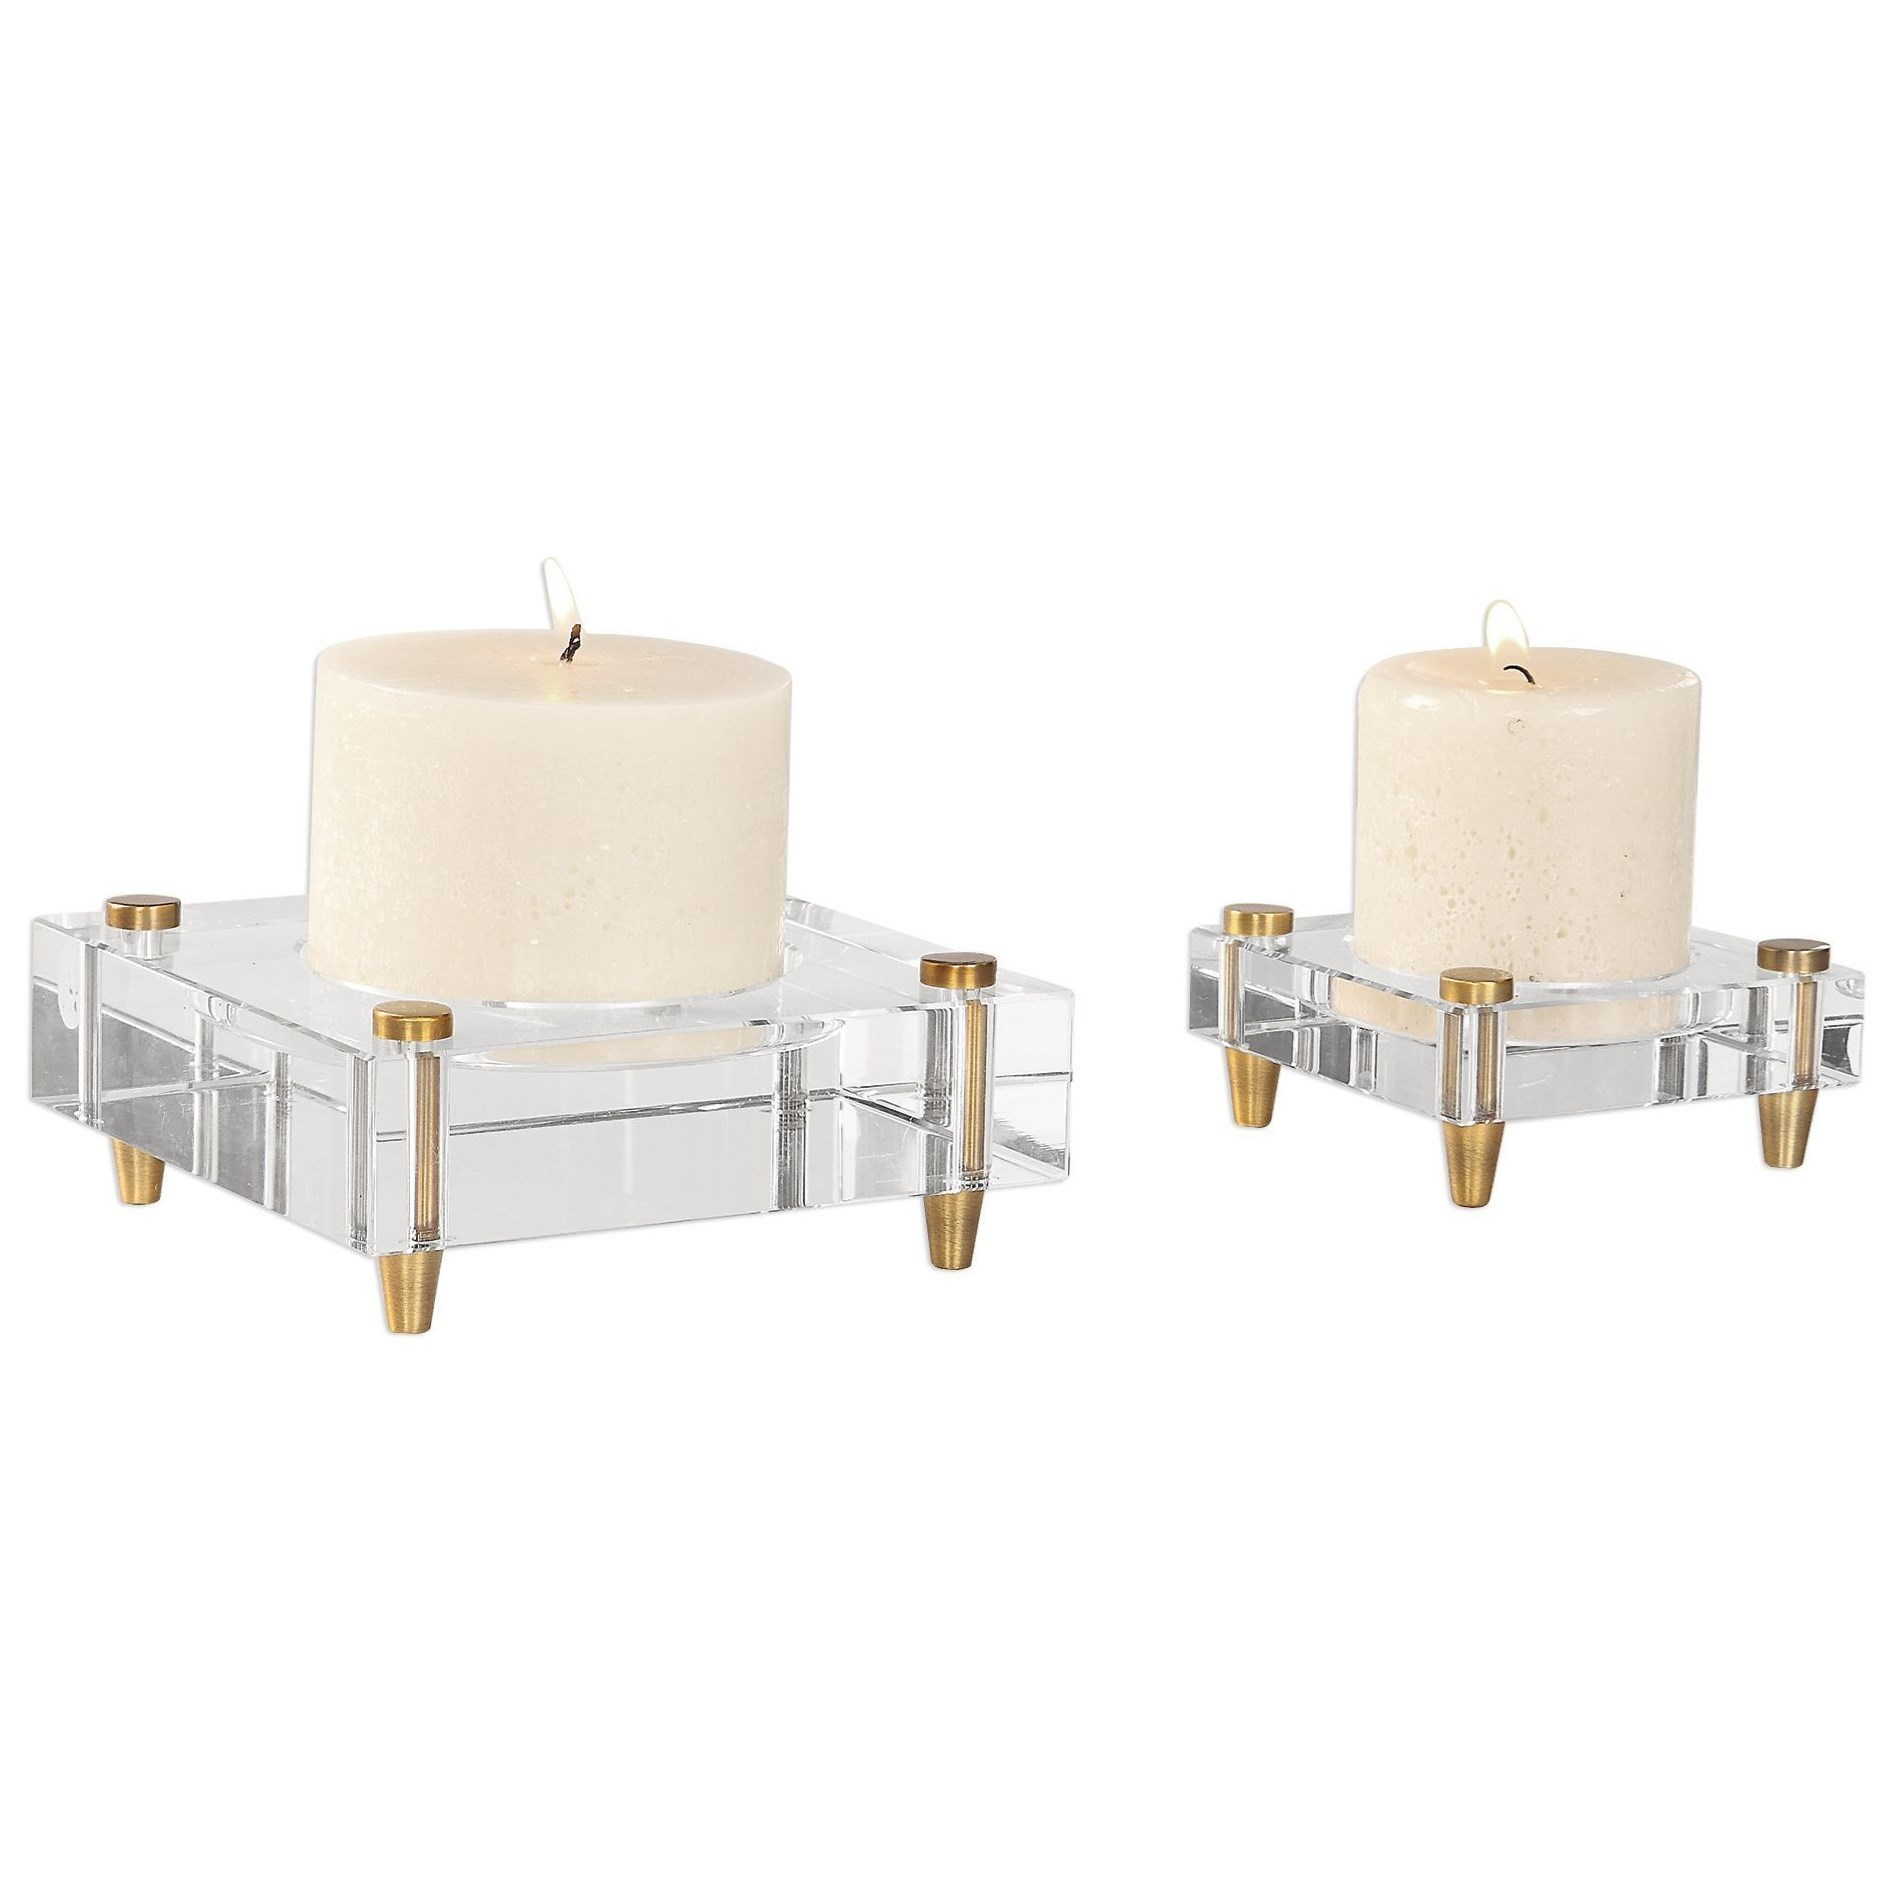 Accessories - Candle Holders Claire Crystal Block Candleholders, S/2 by Uttermost at Dunk & Bright Furniture